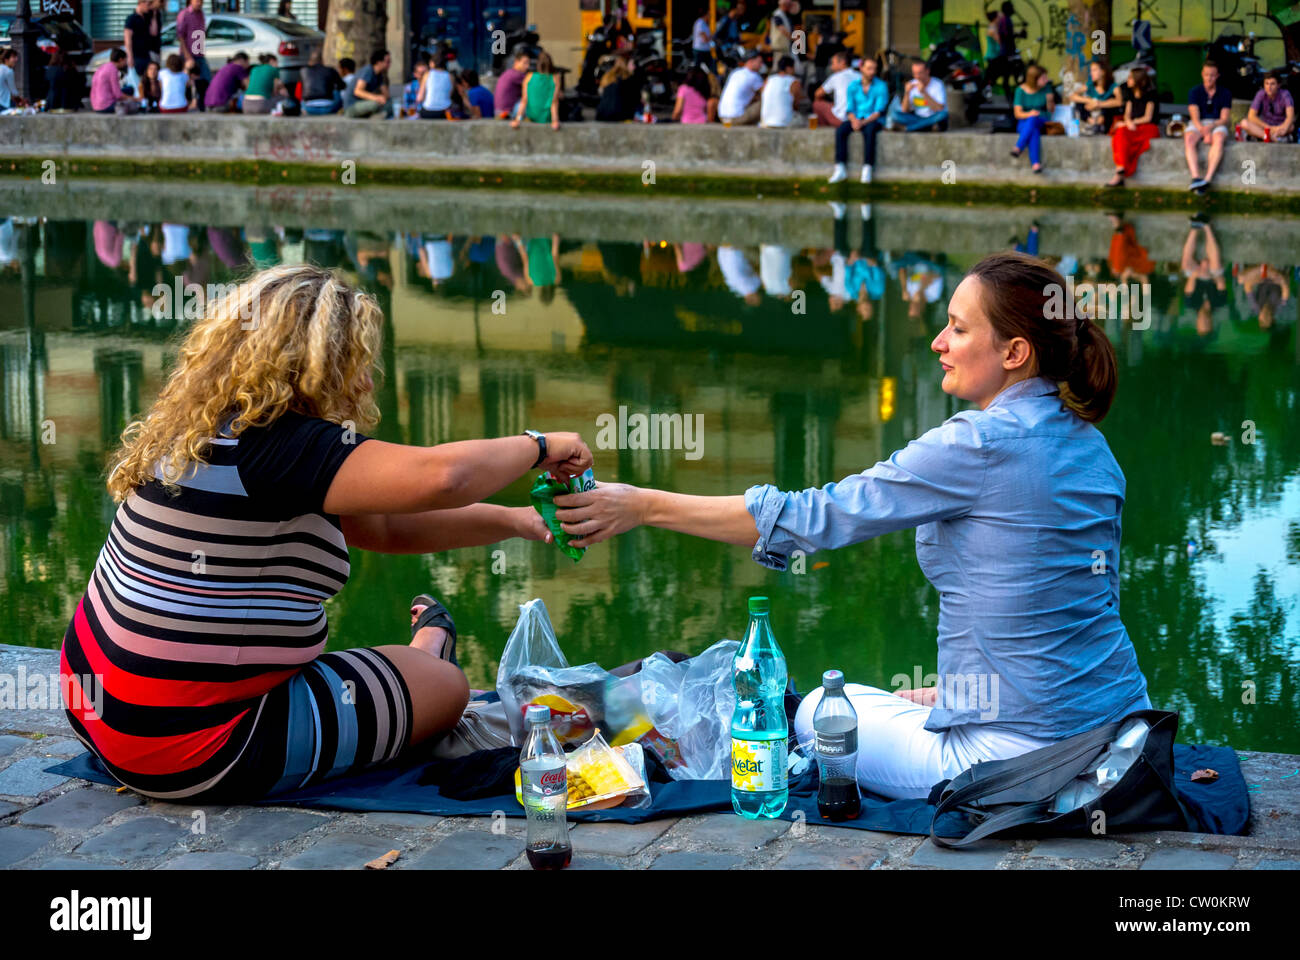 """Paris, France, French Women Picnicking, Sharing Drinks Outside,  on the """"Canal Saint Martin"""" Stock Photo"""